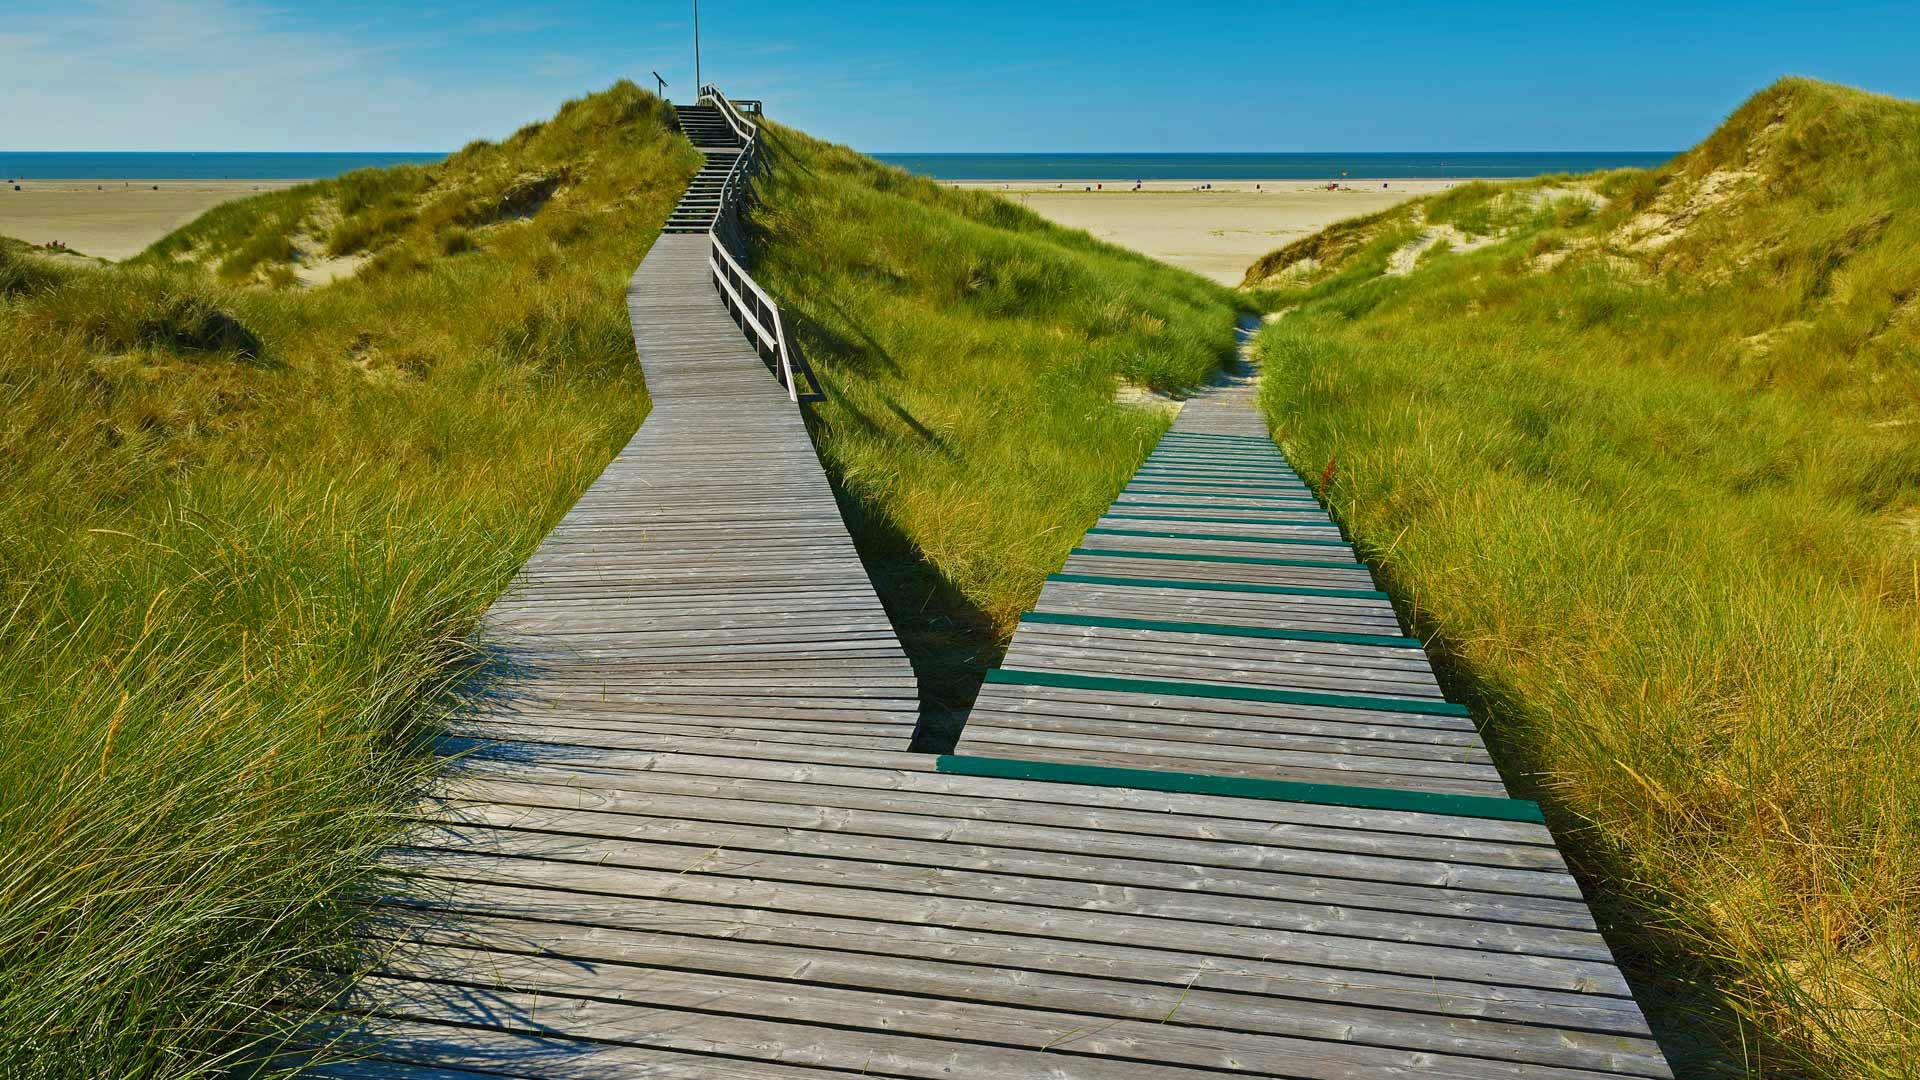 A boardwalk in Norddorf on Amrum Island, Germany (© Raimund Linke/Getty Images)